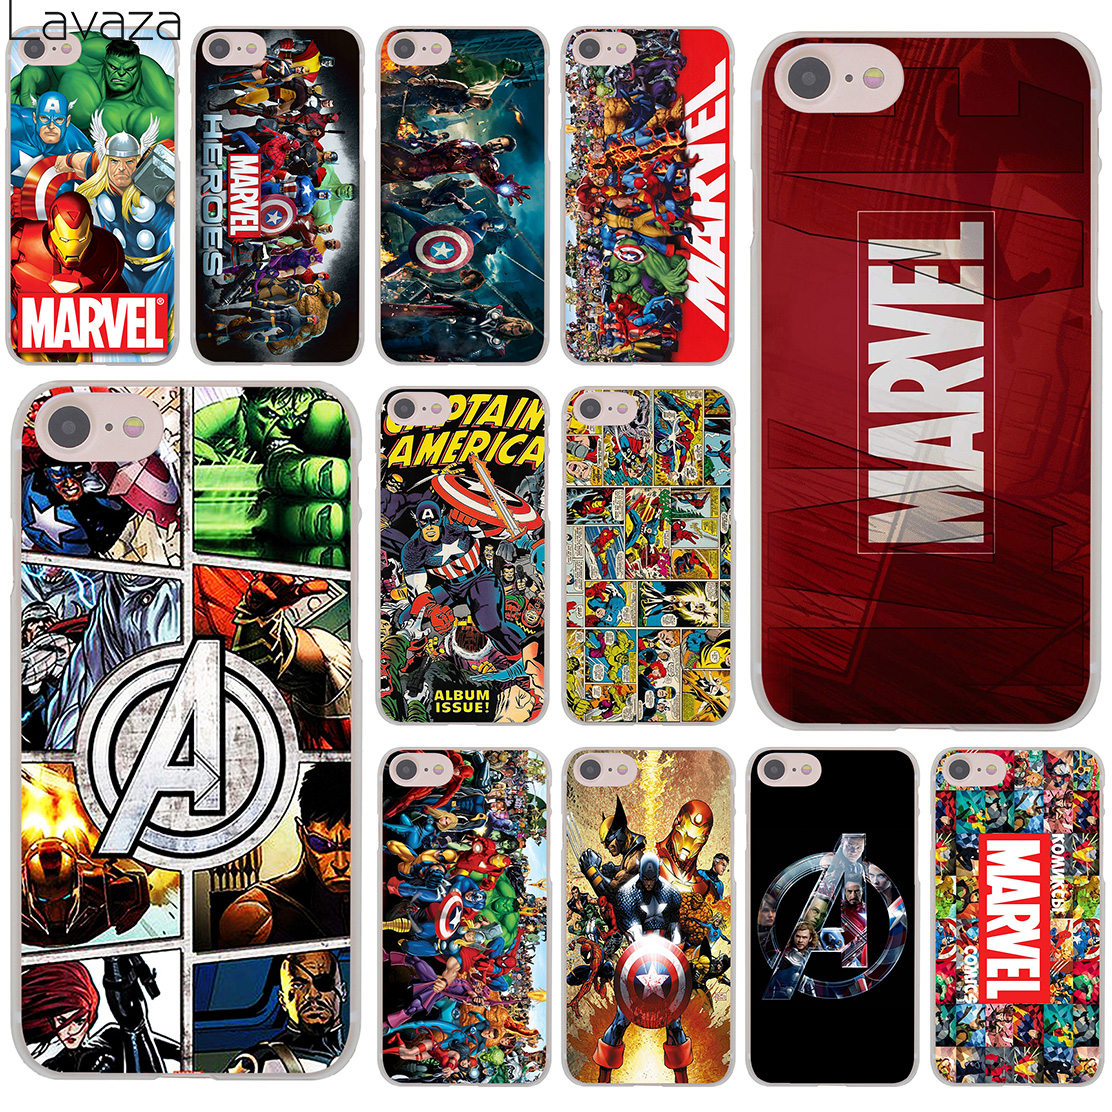 Marvel Superheroes The Avengers Hard Transparent Case Cover for iPhone 7 7 Plus 6 6S Plus 5 5S SE 5C 4 4S marvel